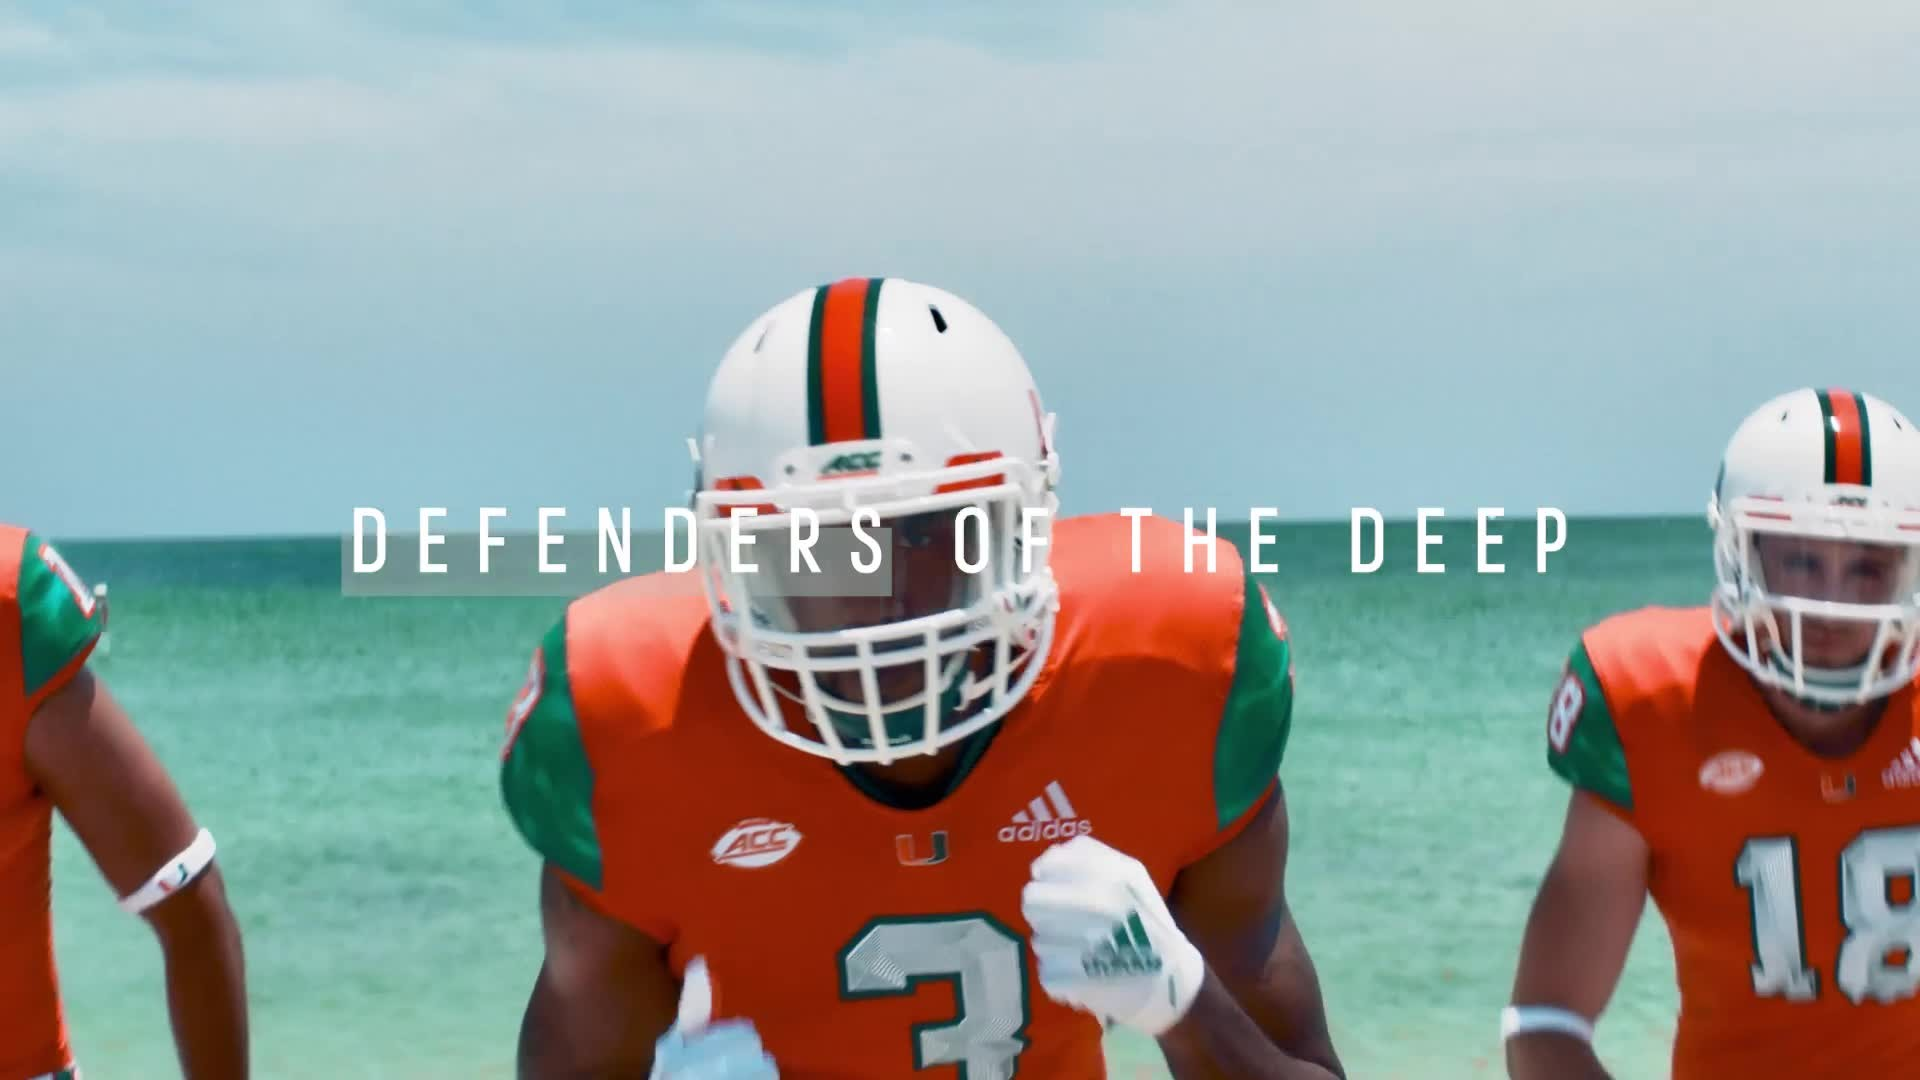 576d3ab4f11b University of Miami Football and adidas unveil special edition 2018 uniforms  featuring parley materials made from Upcycled marine plastic waste